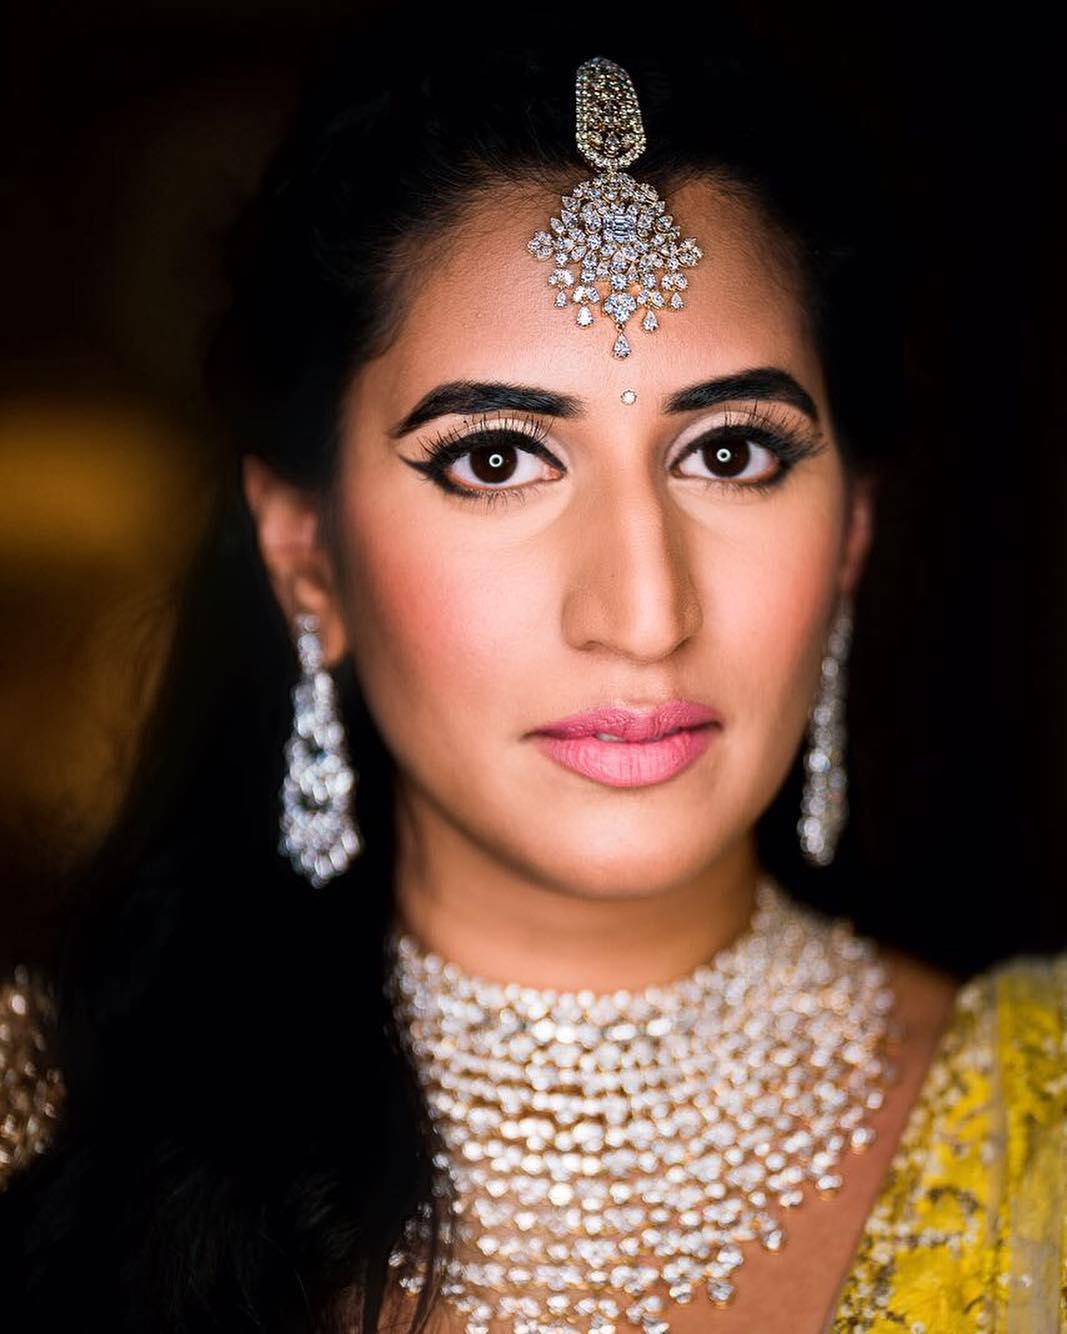 diamond maang tikka on Indian bride with soft makeup pink lips and dramatic eyeliner